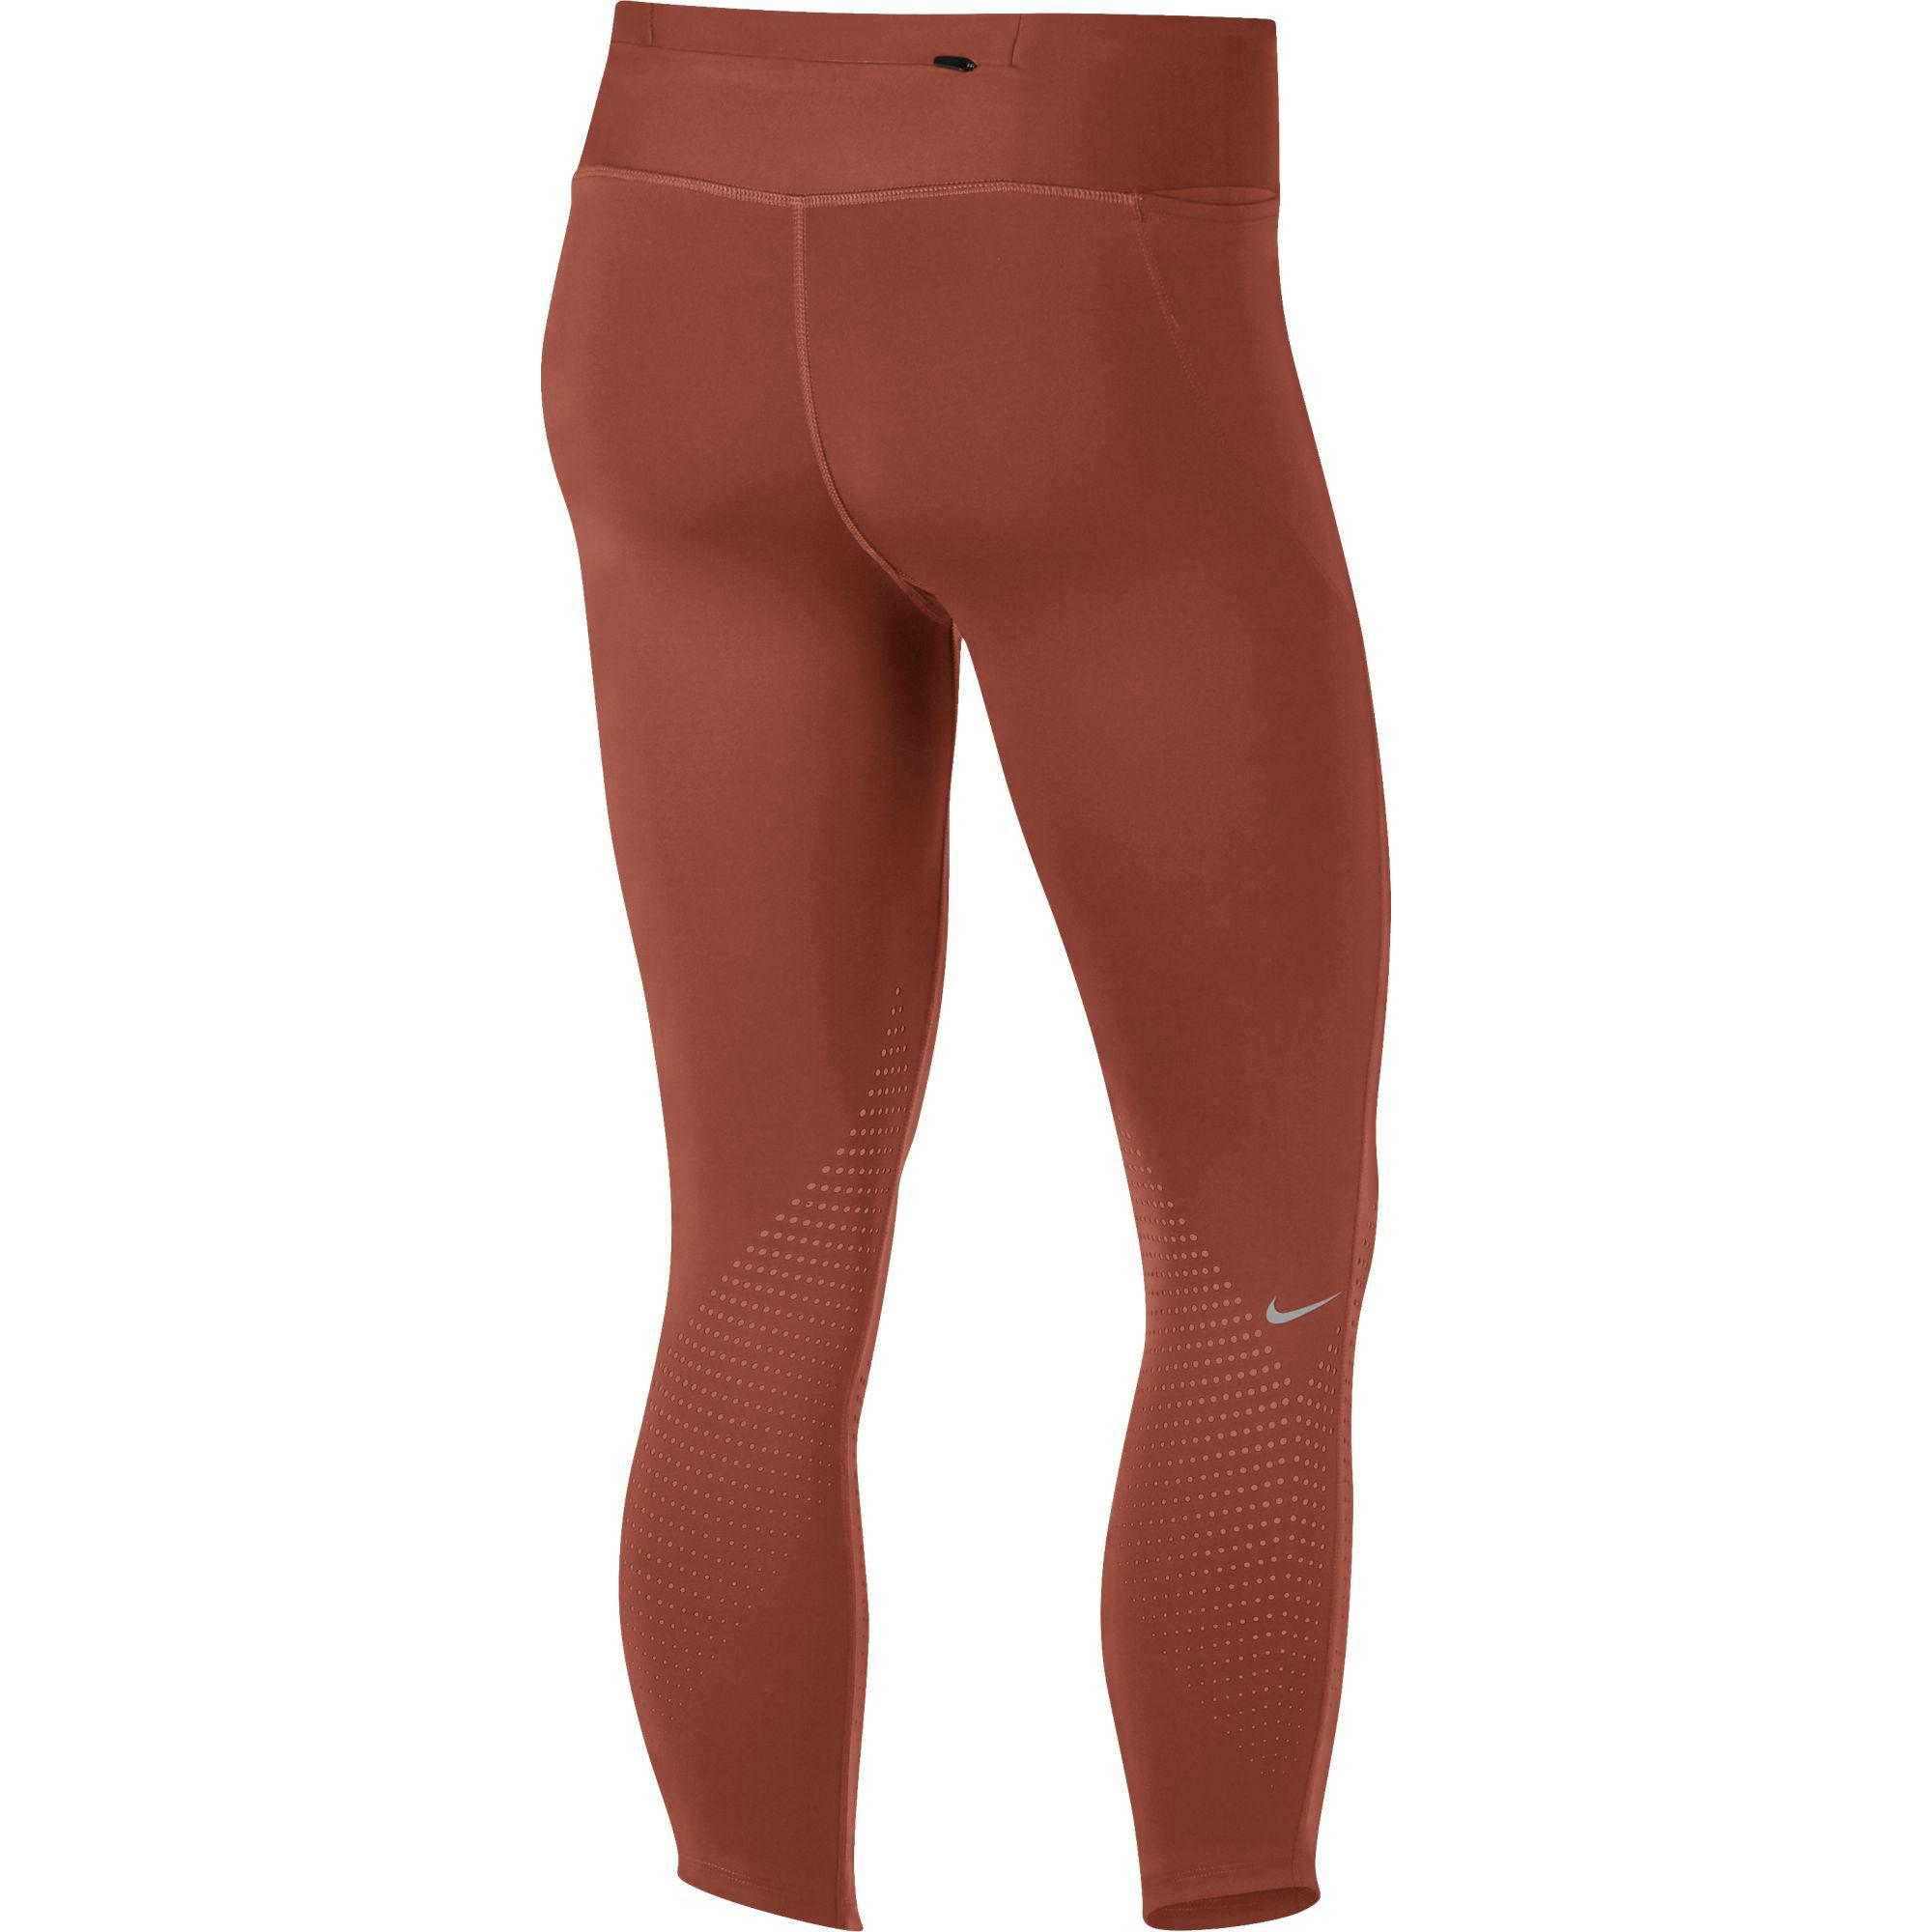 36afcc437b4a Nike. Women s Epic Lux Running Cropped Leggings